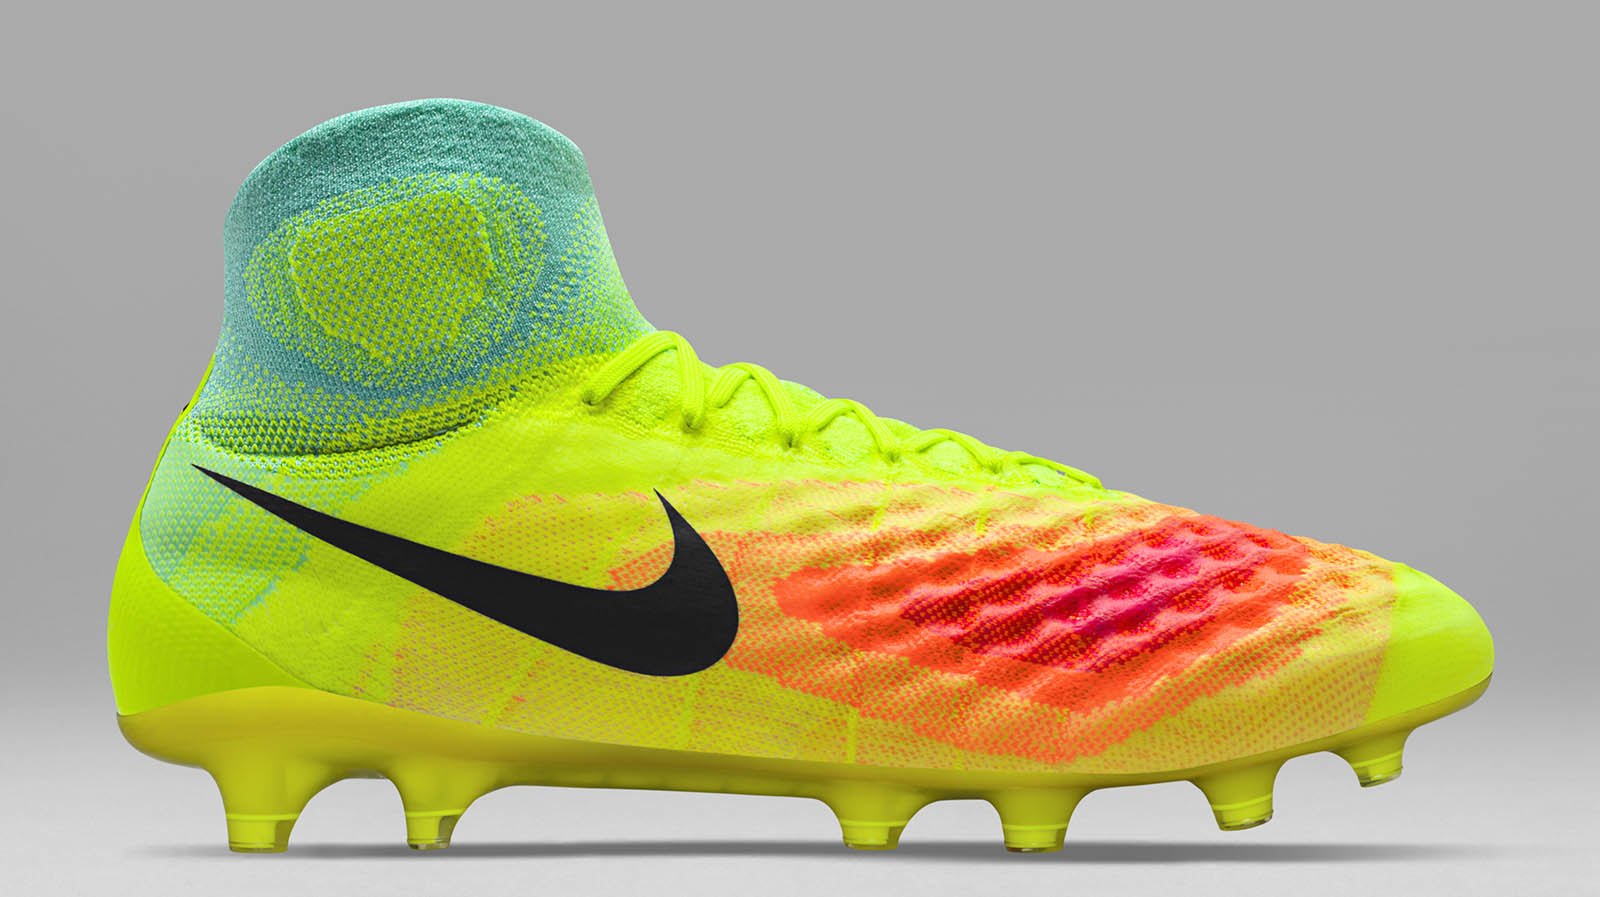 NIKE MAGISTA OBRA 2 Play Test & First Impression - YouTube